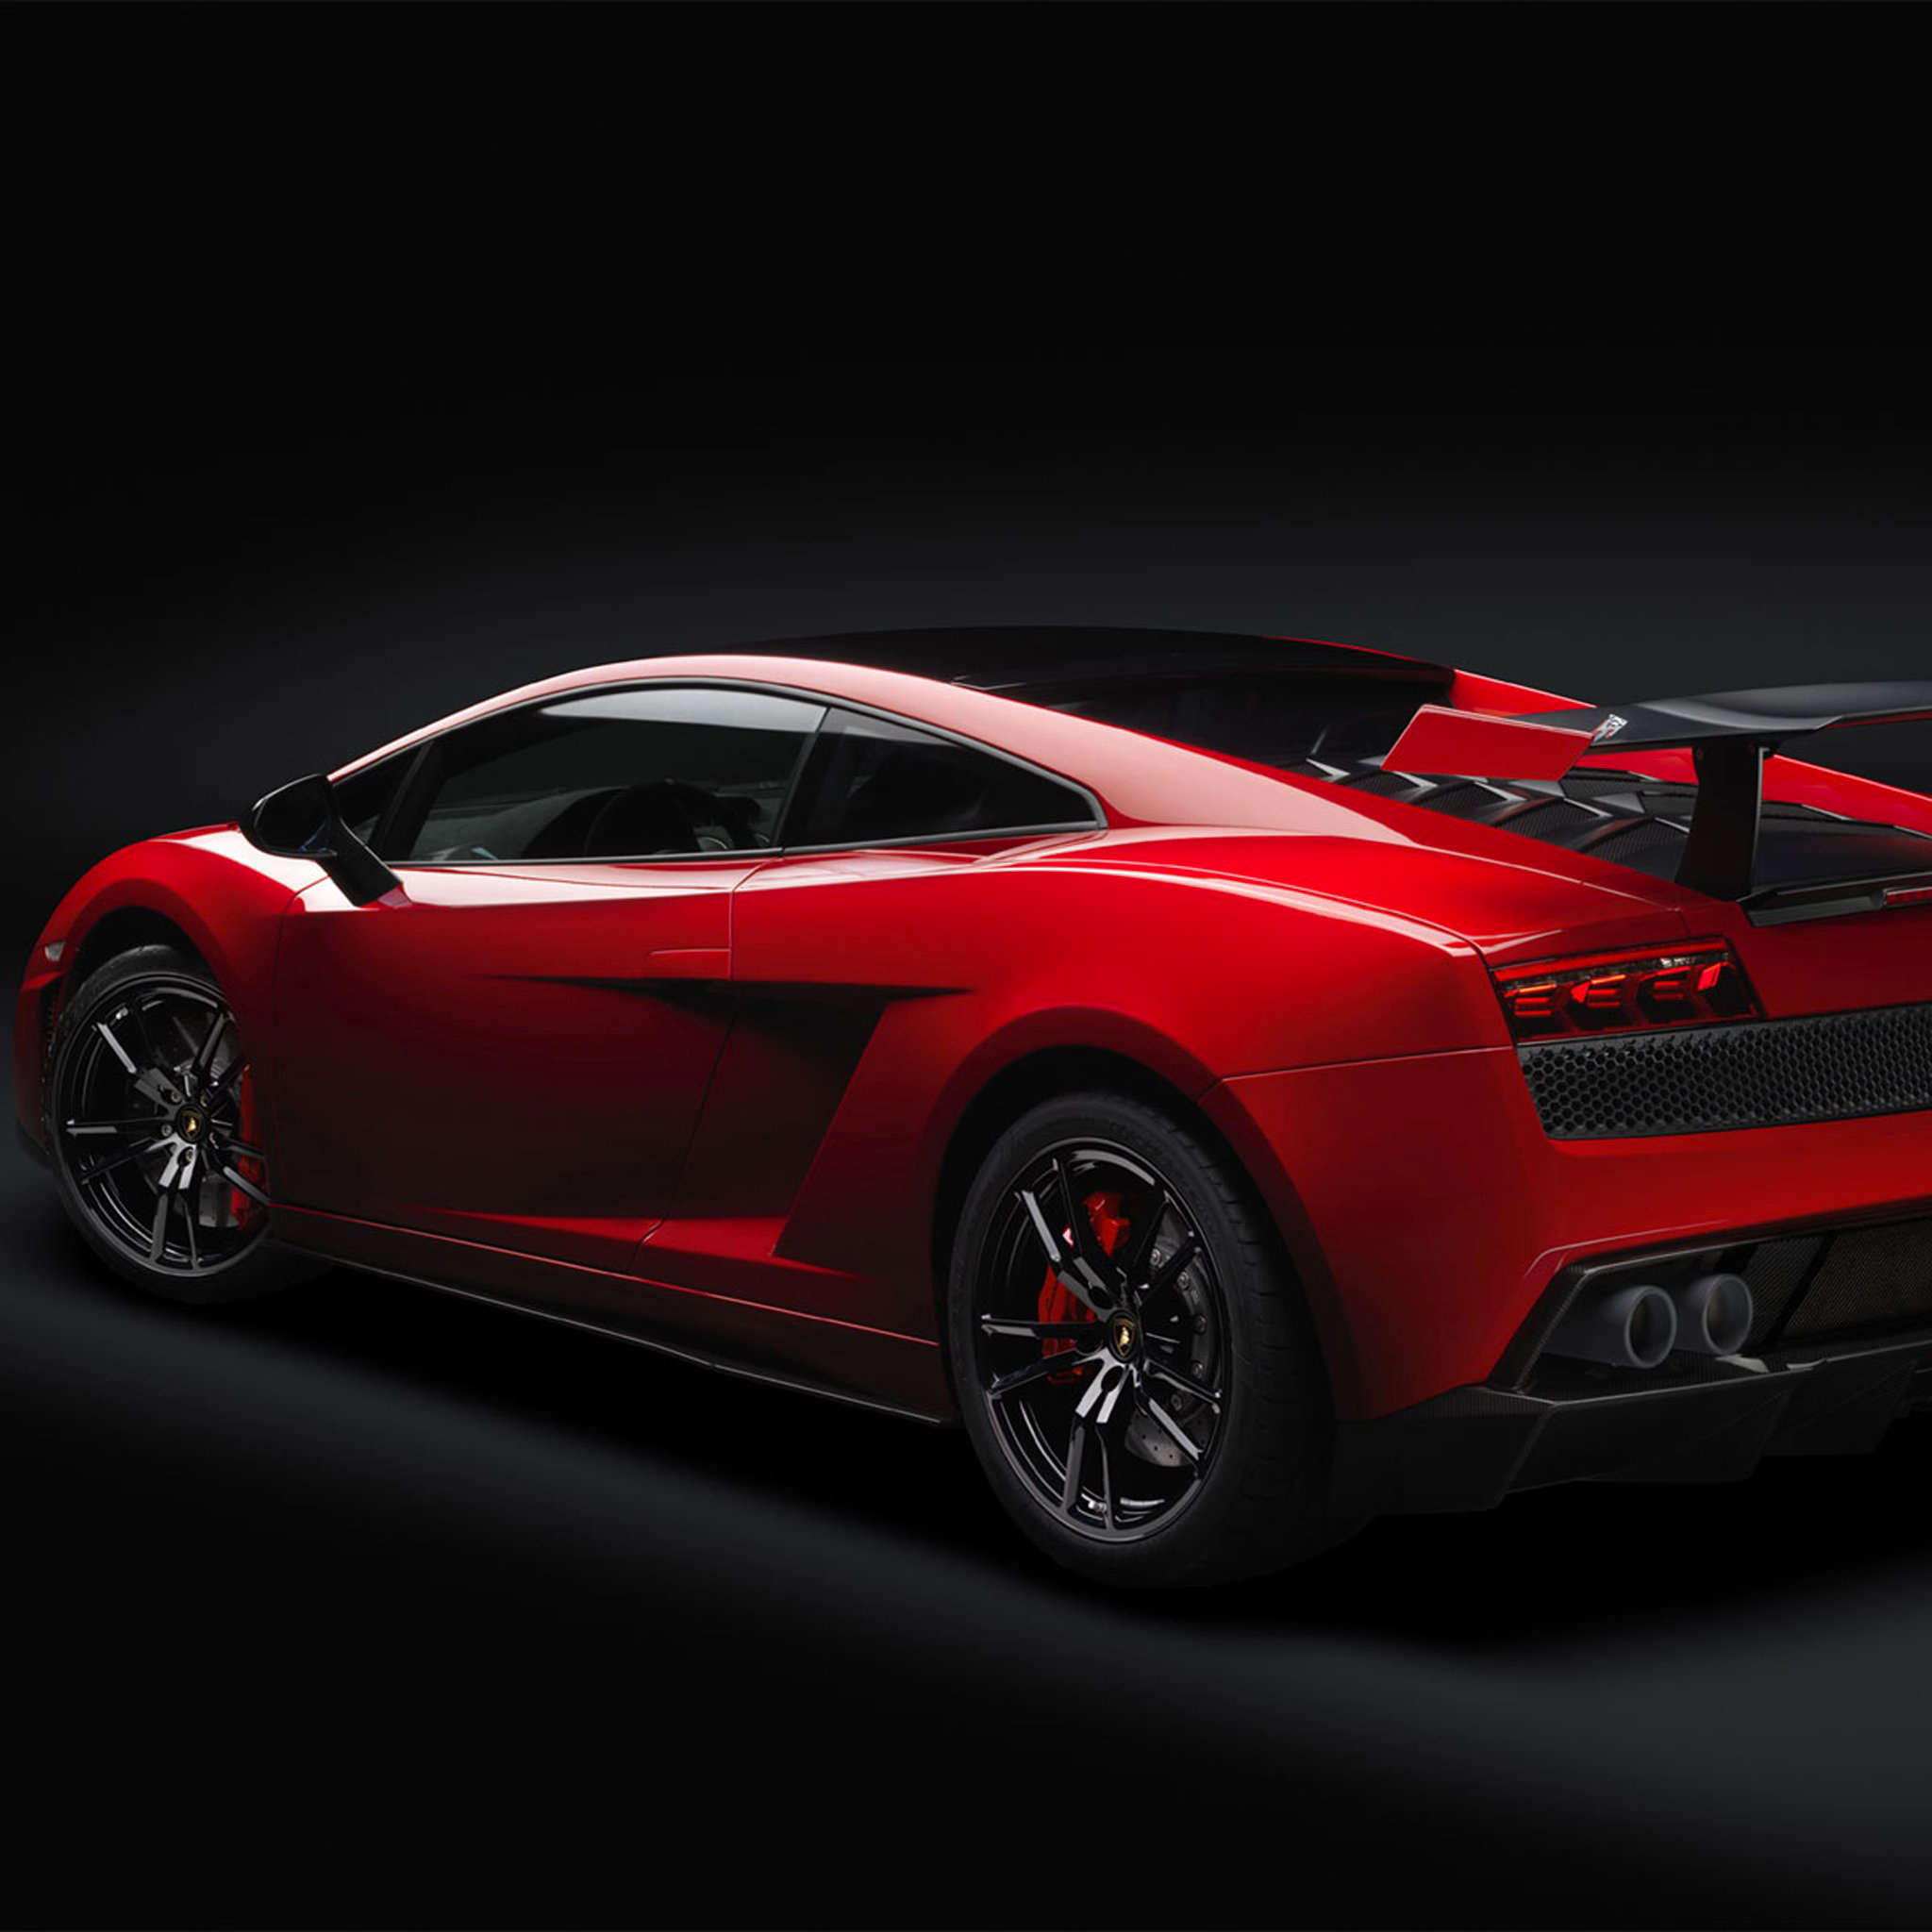 Lamborghini-Gallardo-Lp570-3Wallpapers-iPad-Retina